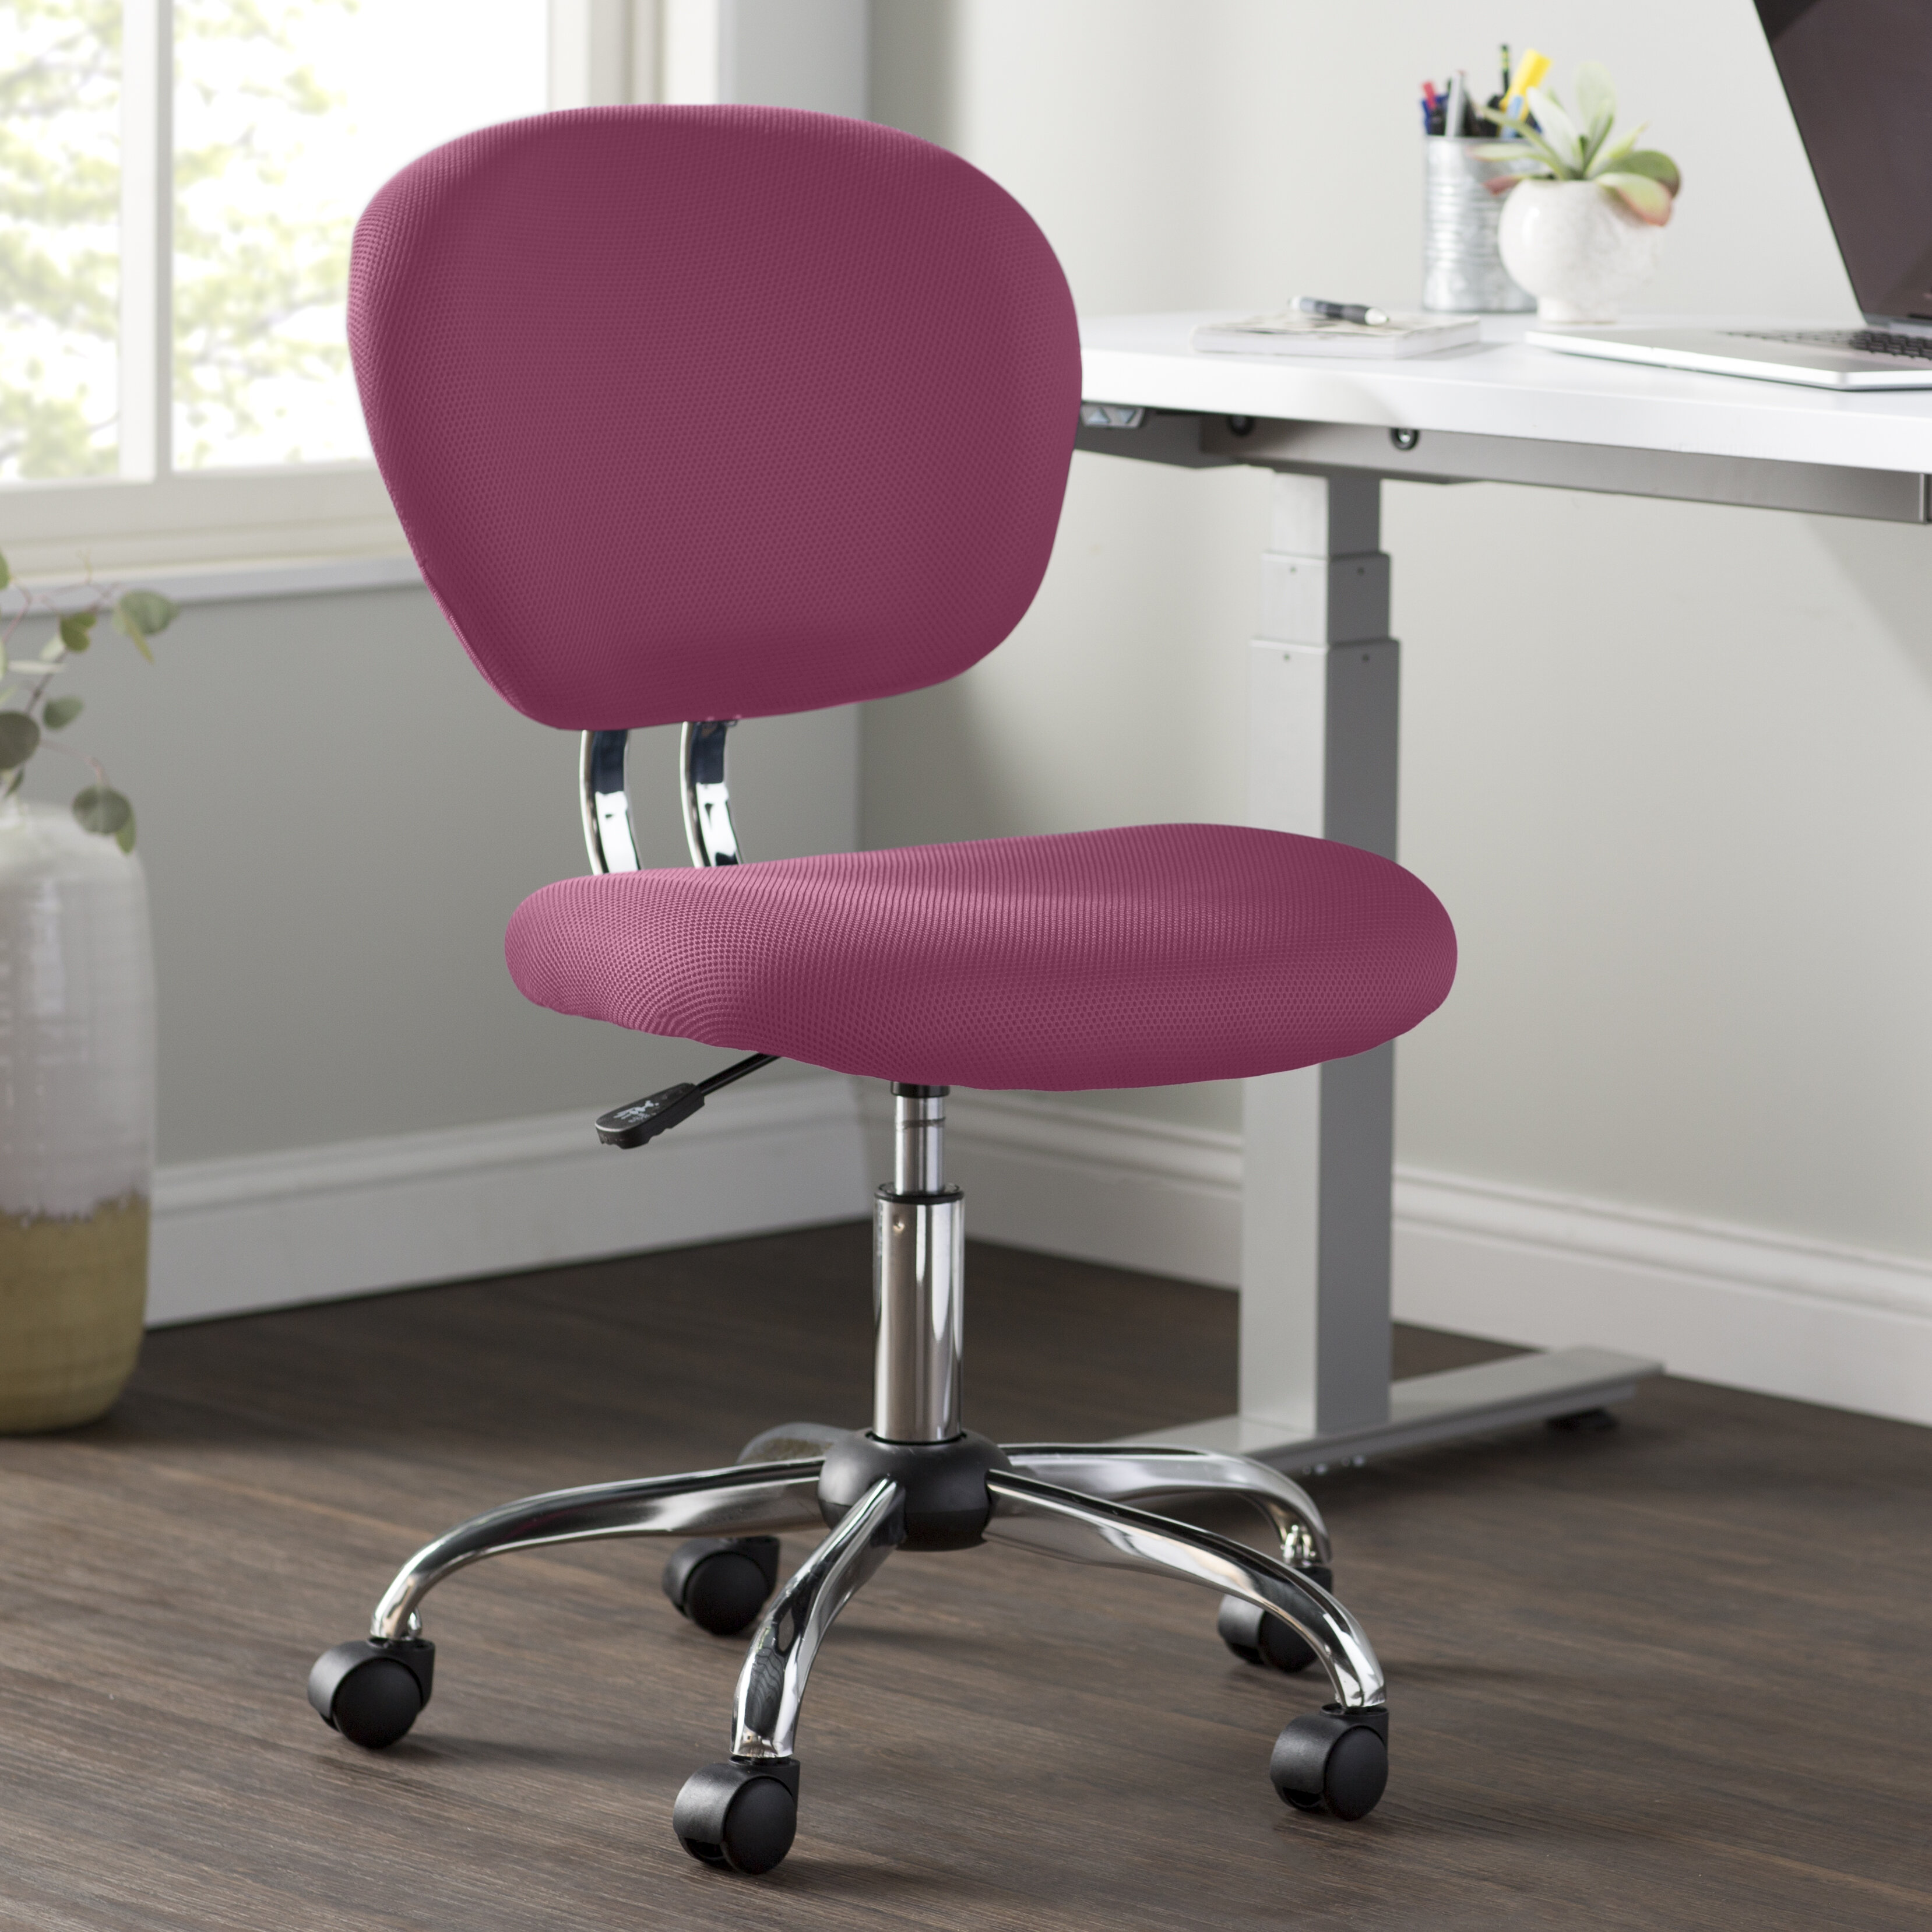 Pink Desk Chairs Free Shipping Over 35 Wayfair